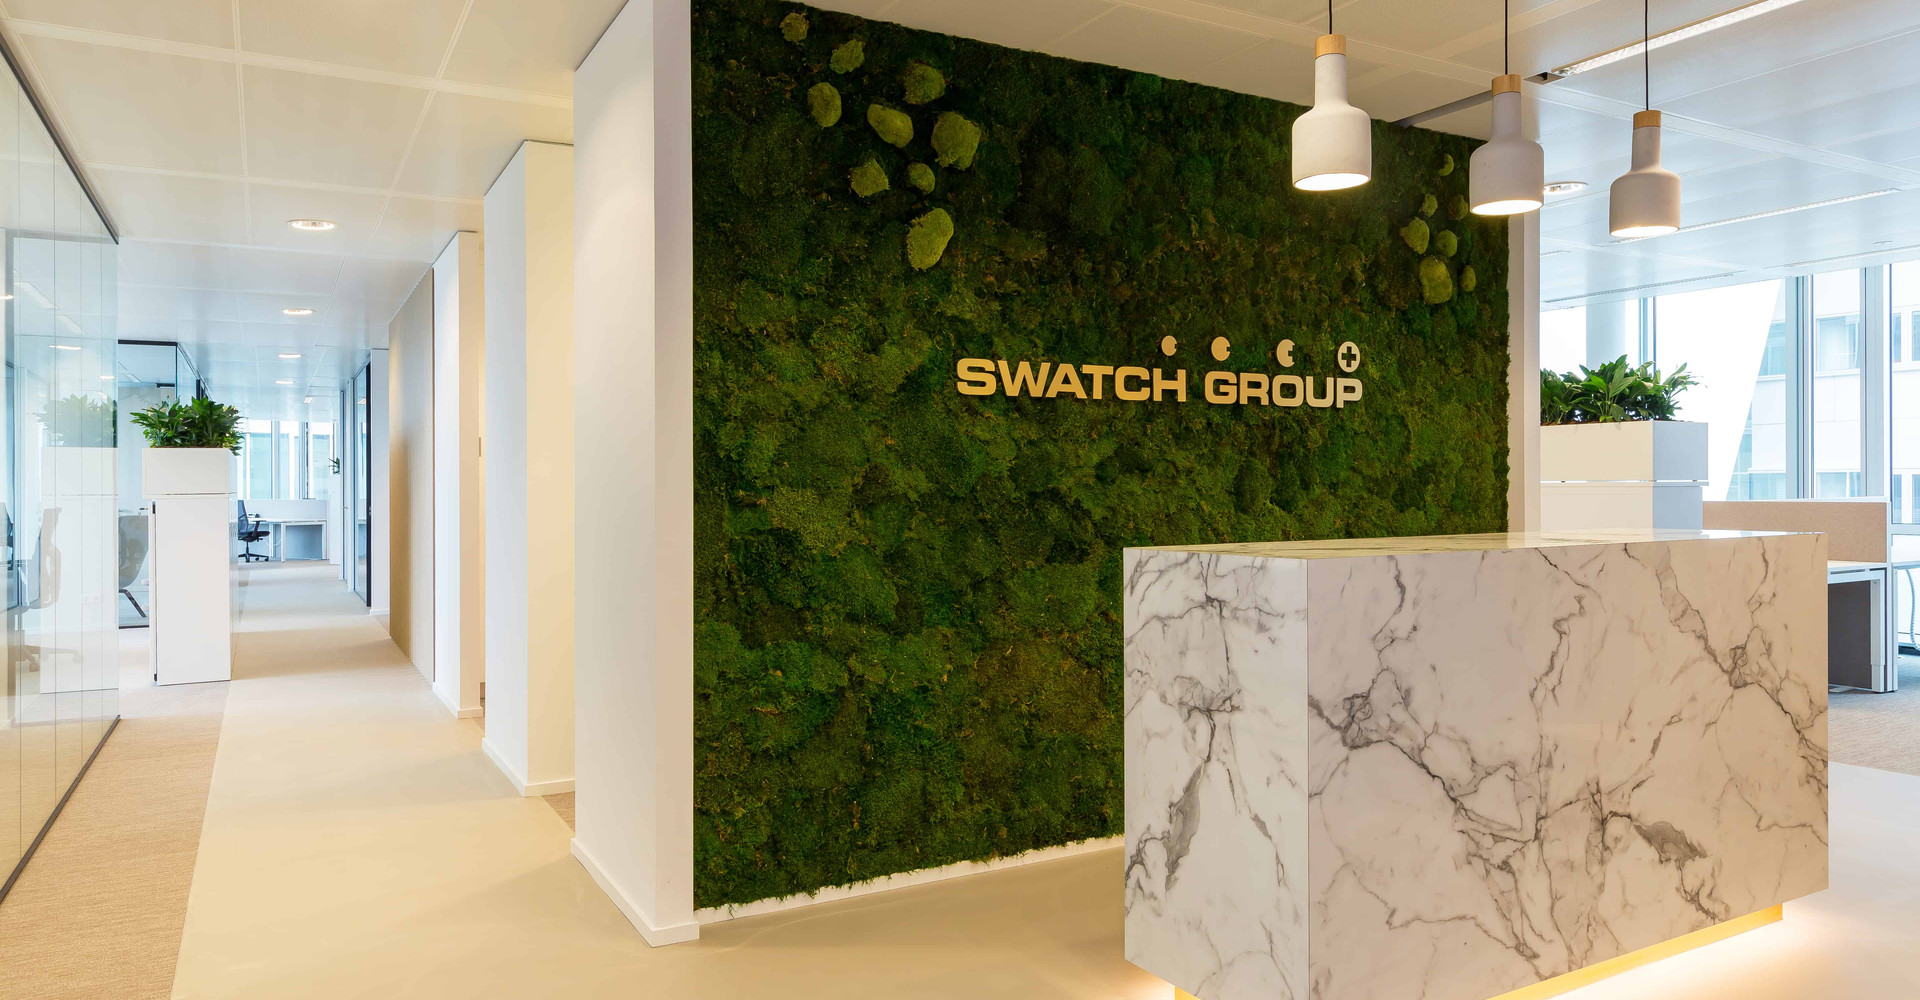 Swatch-Group-3.jpg